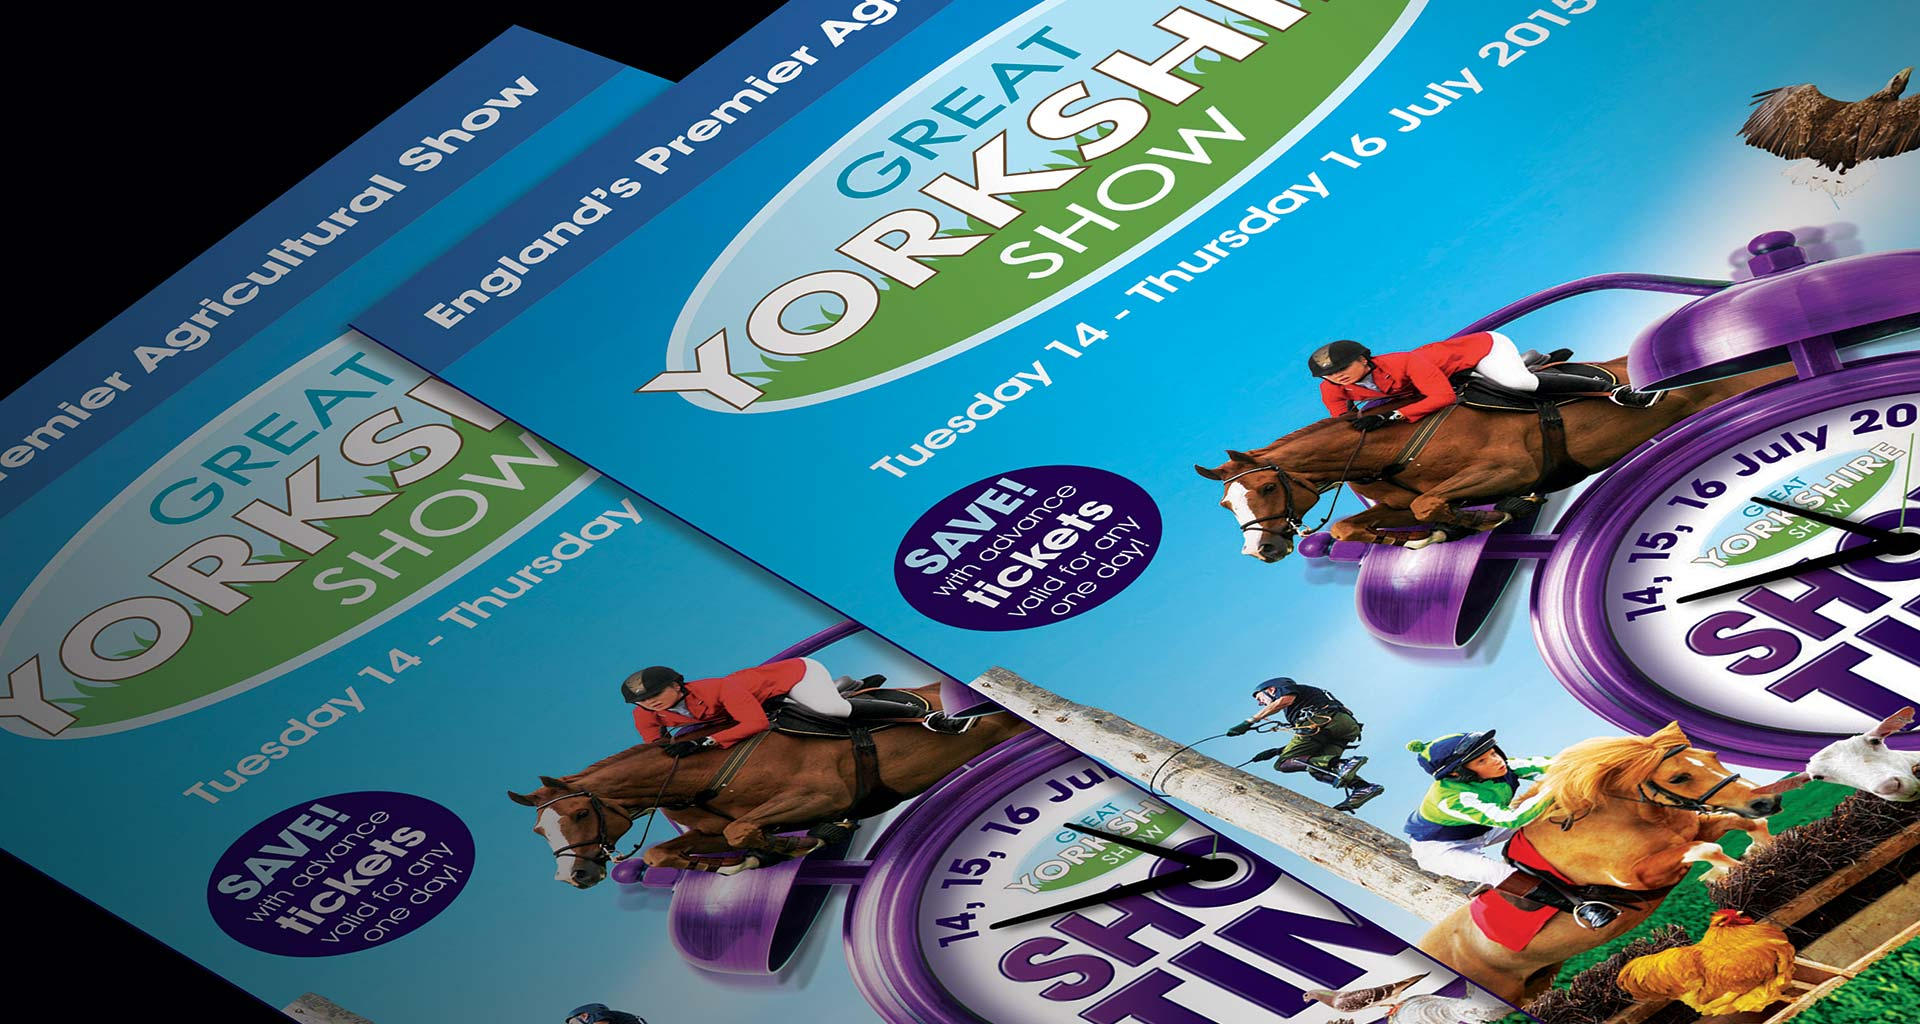 greatyorkshireshow-leaflets-tigproduction